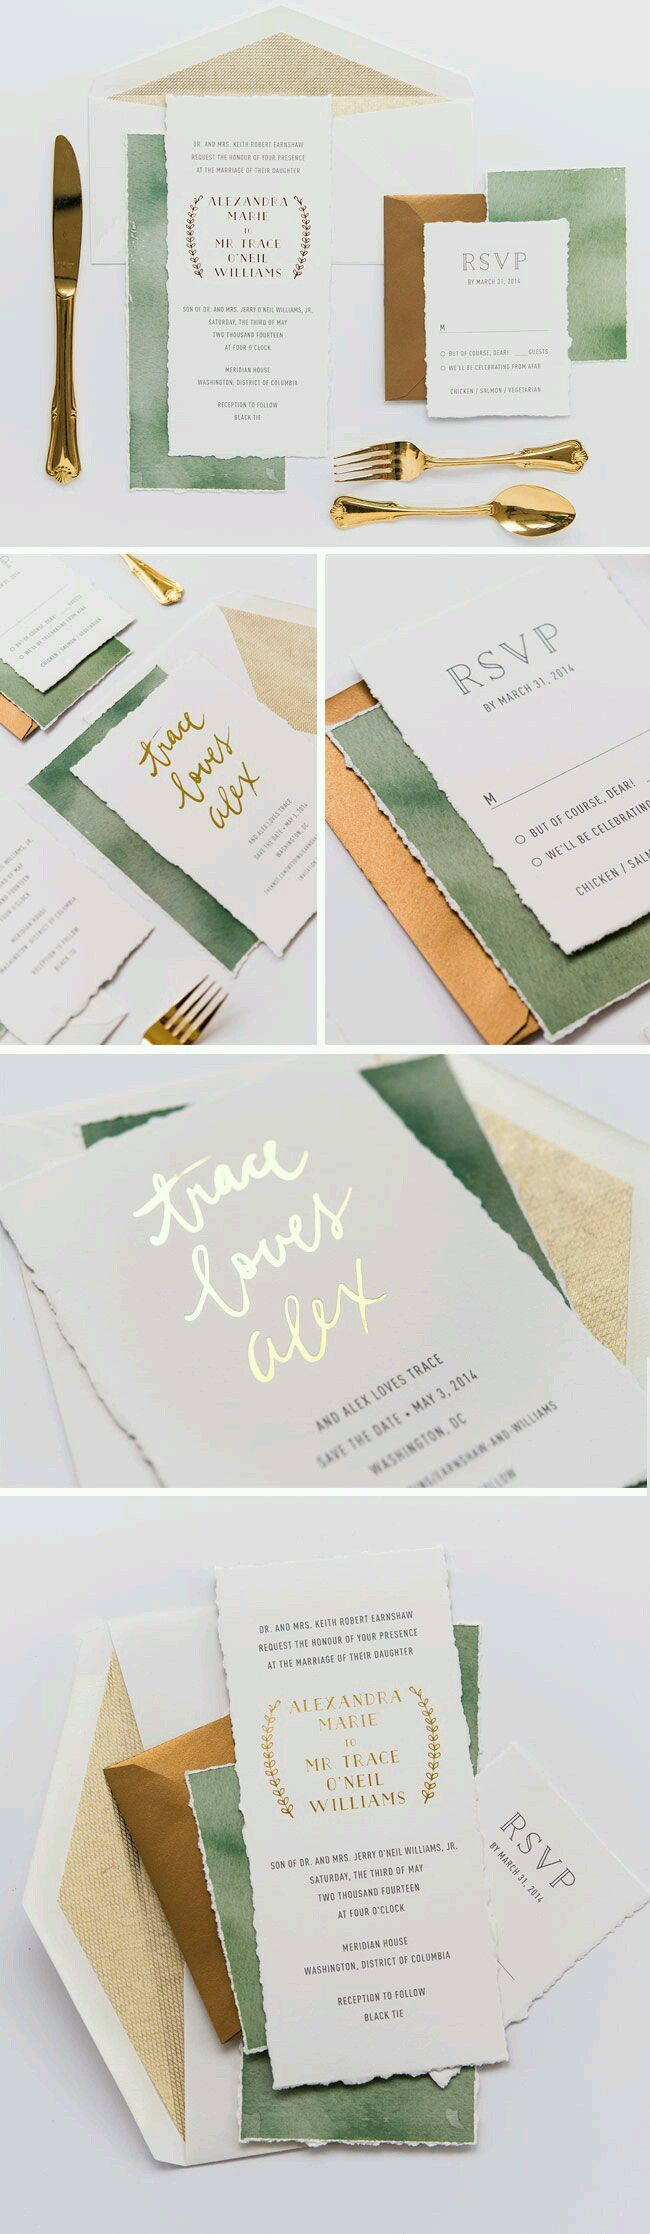 civil wedding invitation card%0A Gold foil and green wedding invites